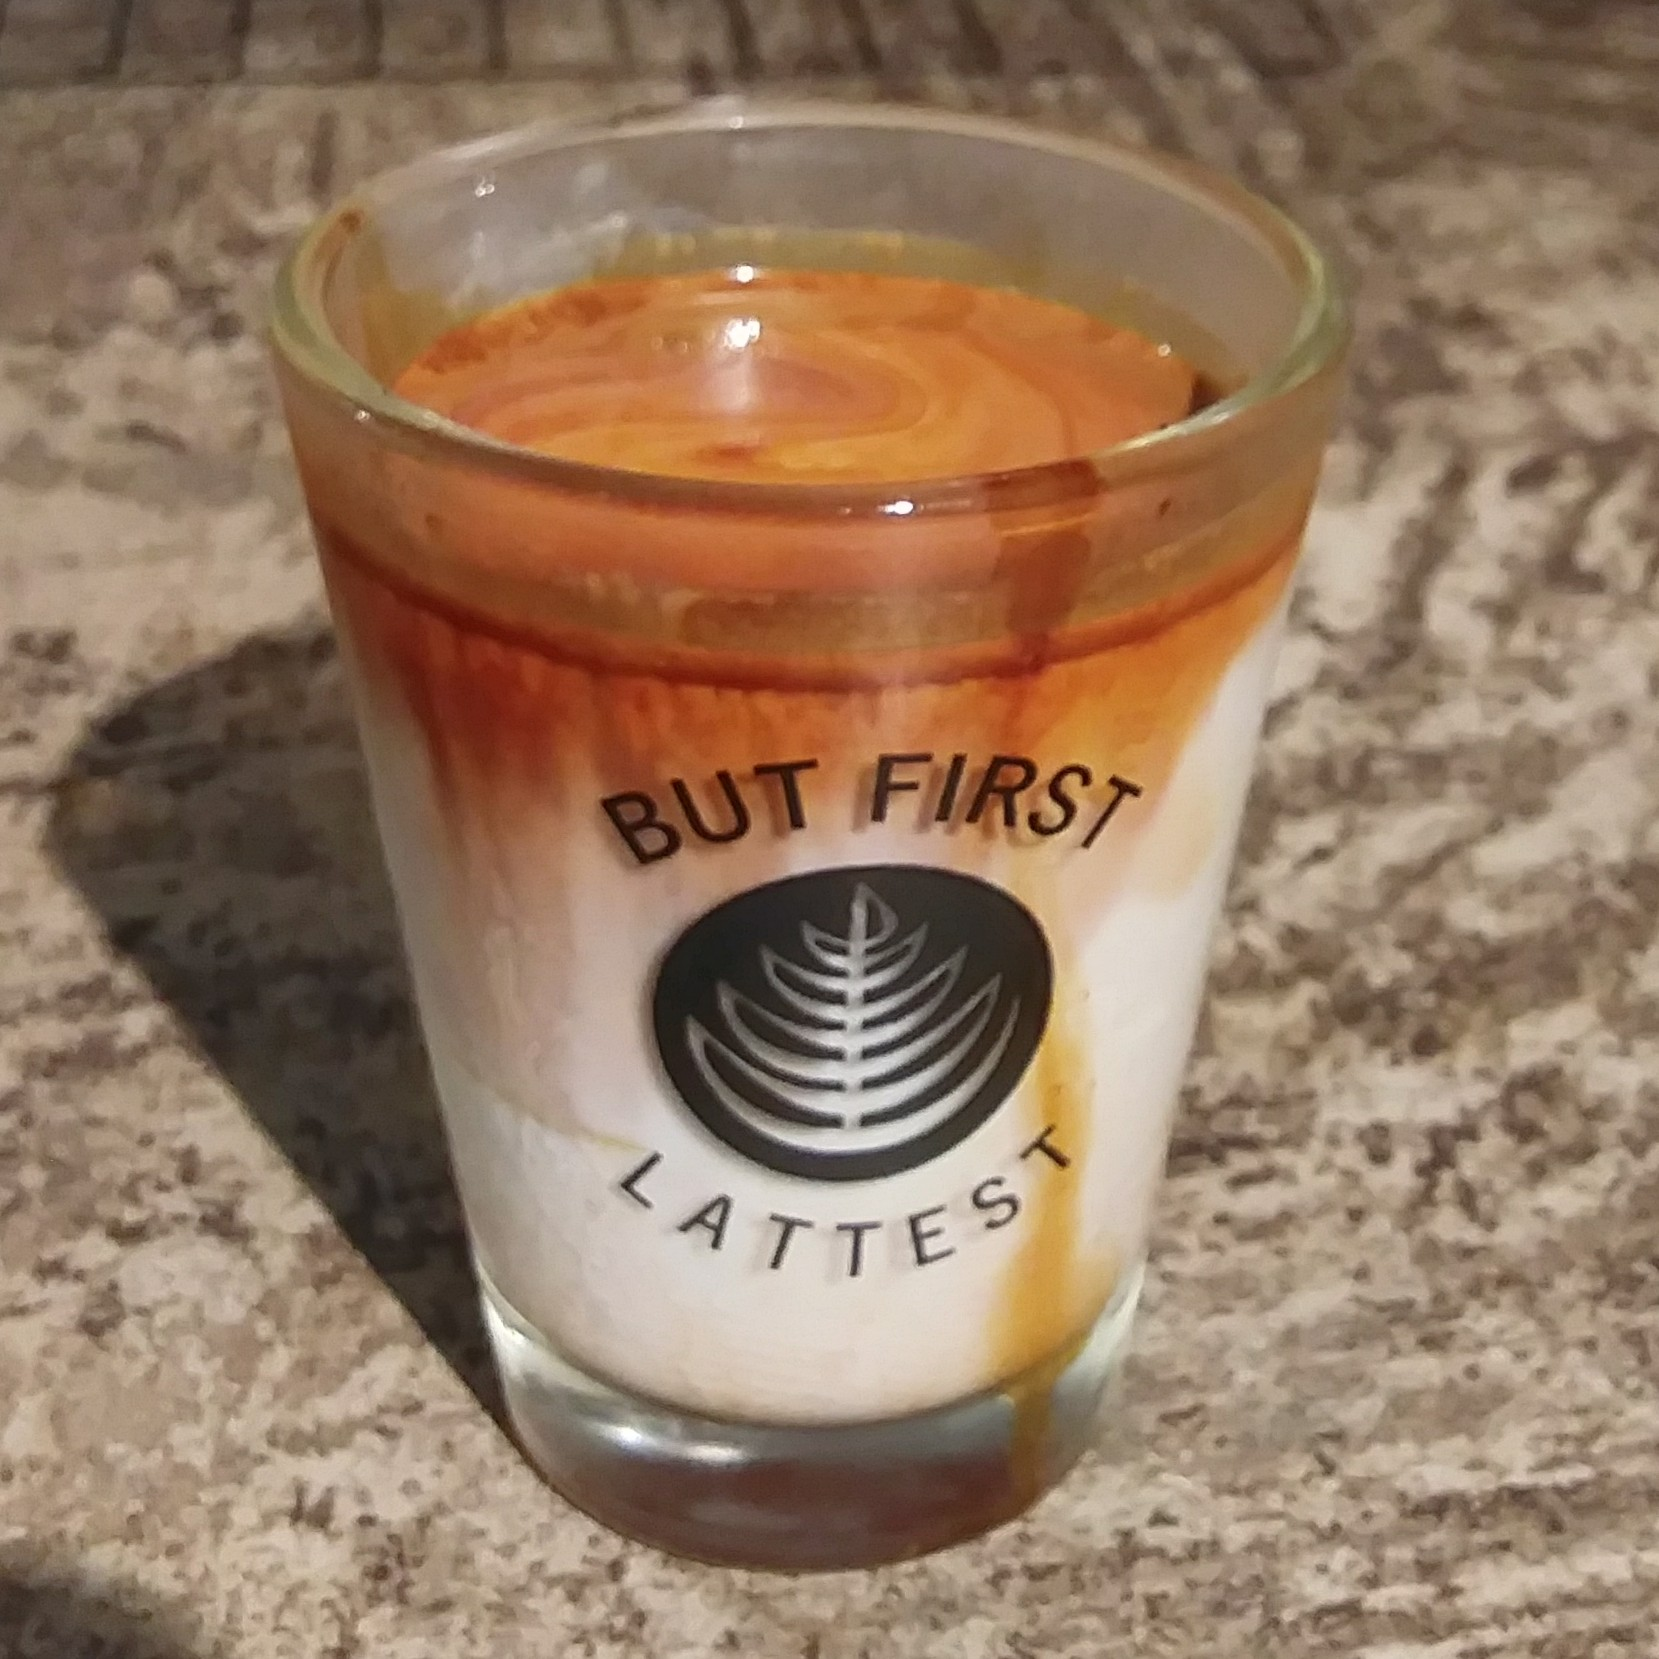 The eponymous Lattest, the signature drink of Lattest in Omotesando, Tokyo: a single espresso shot extracted into a glass of chilled milk.